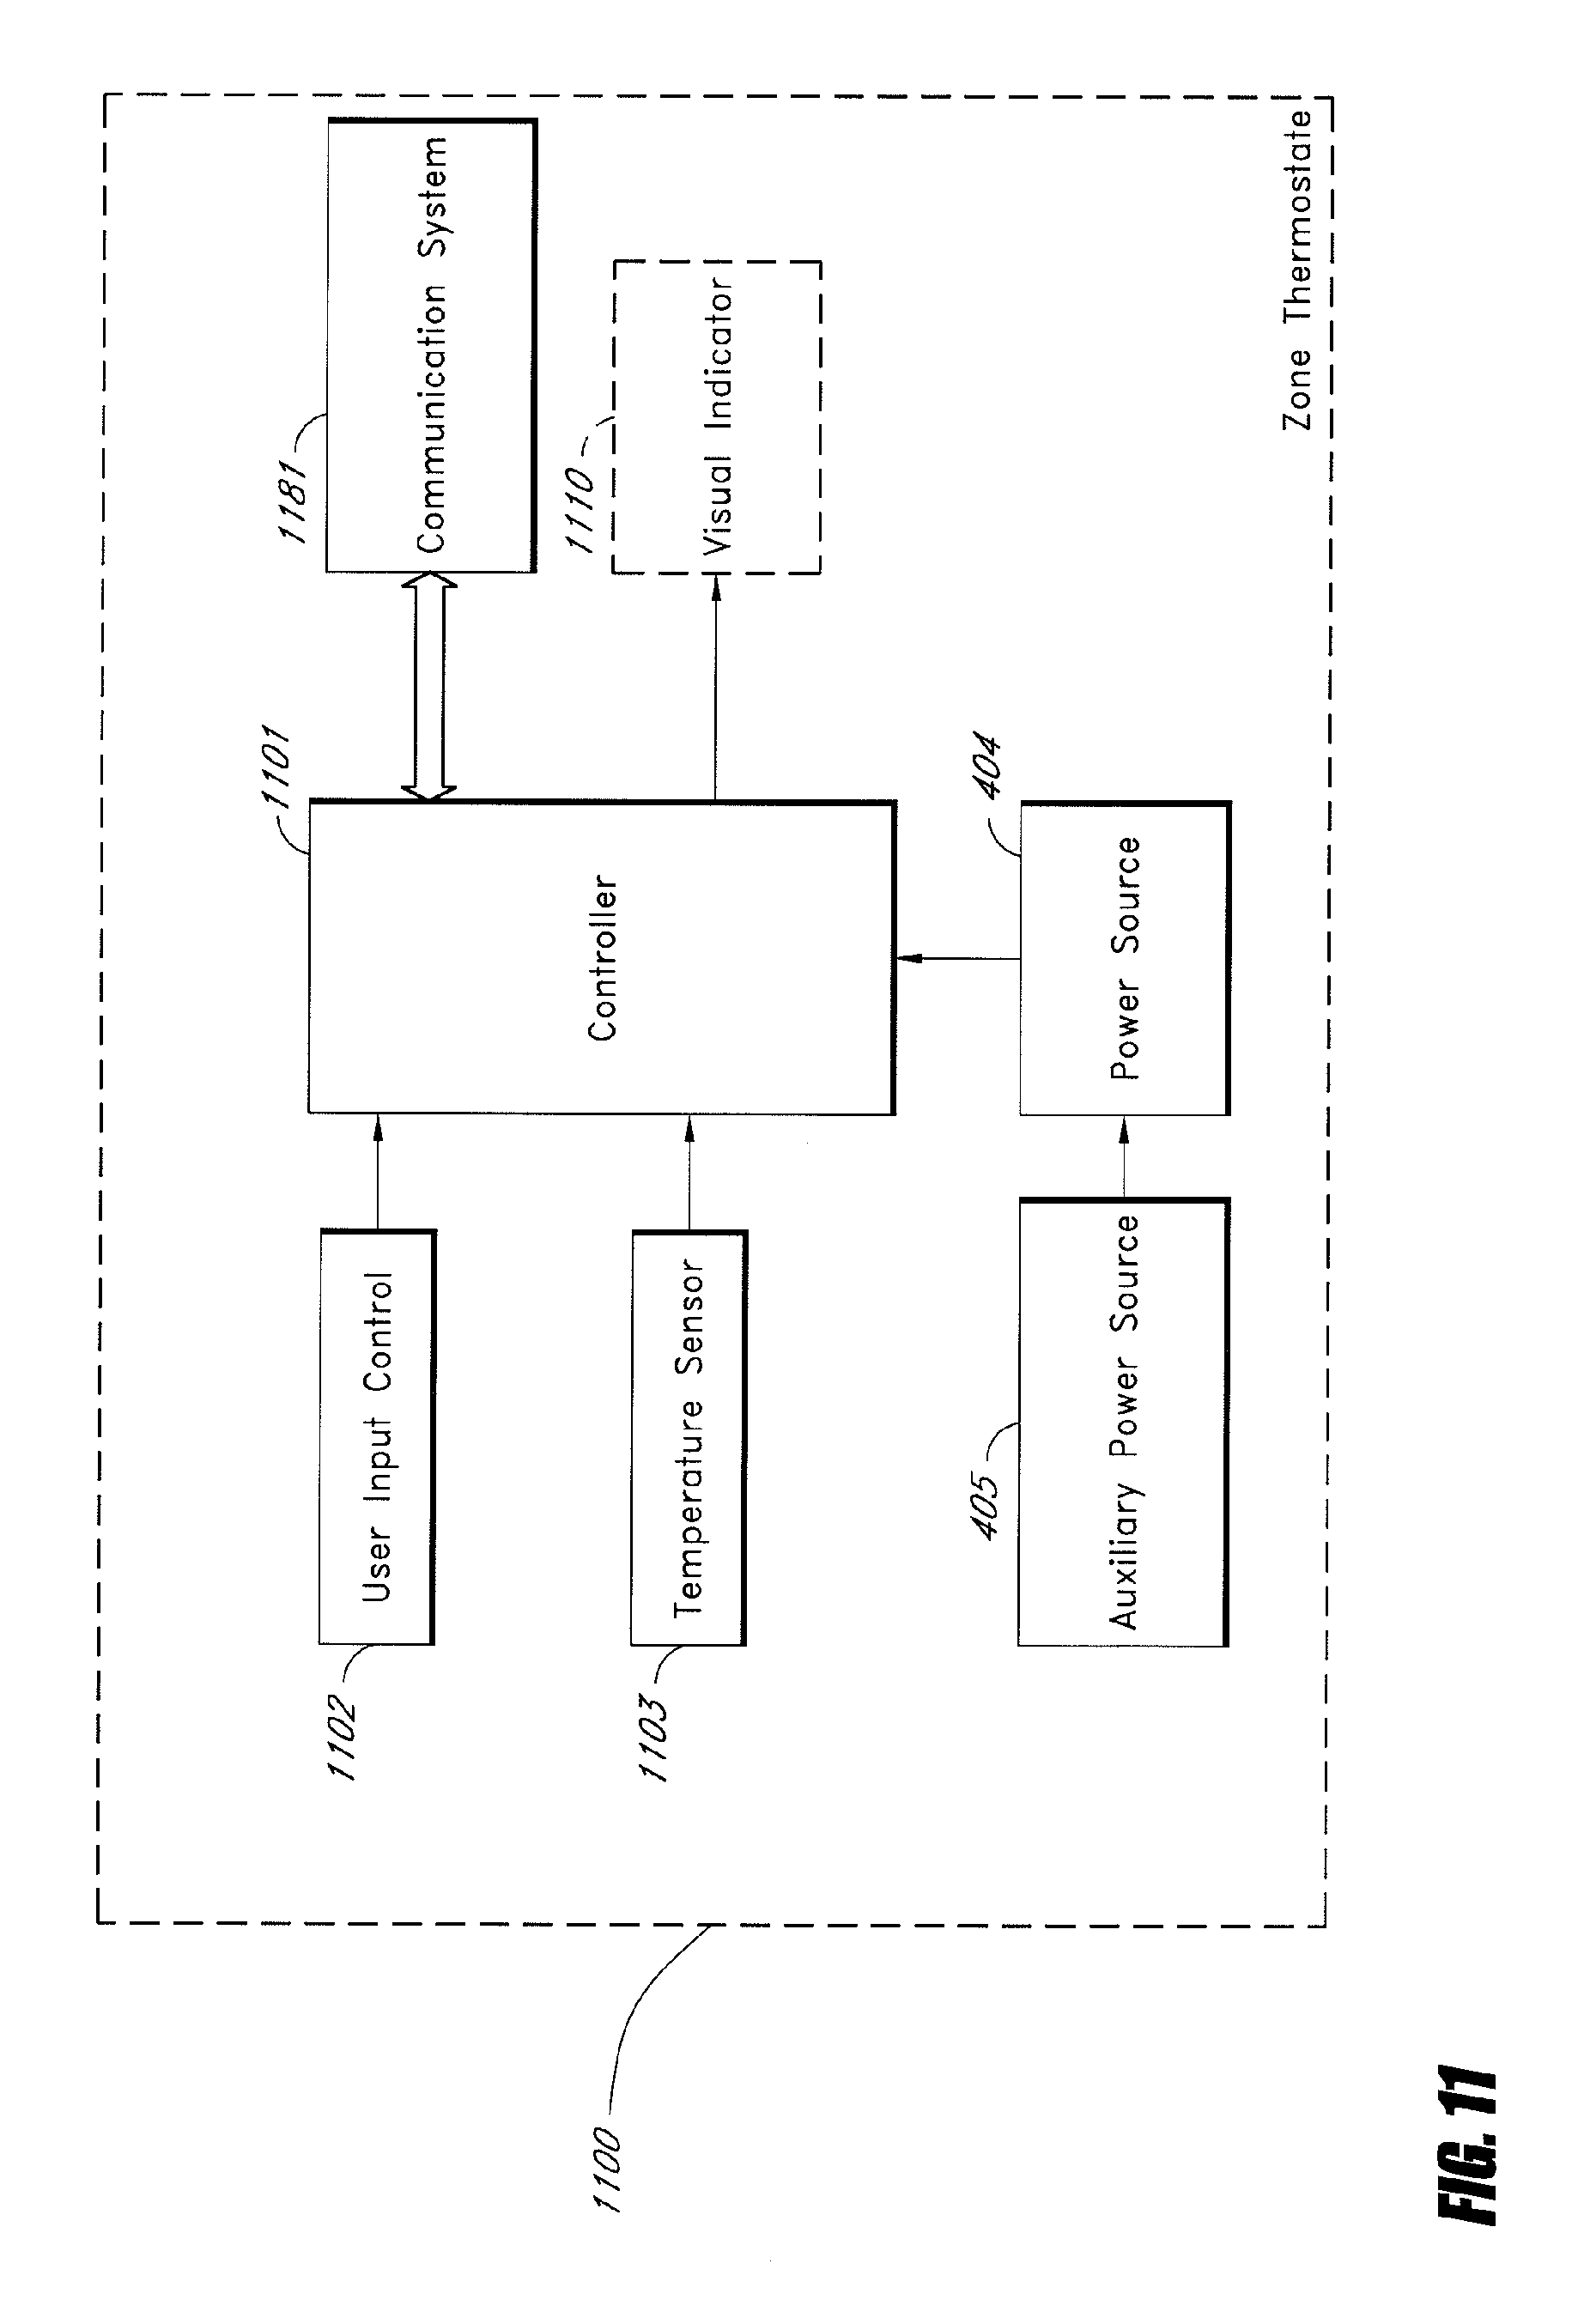 Block Diagram Sbd Tvlcd Digital Ticom